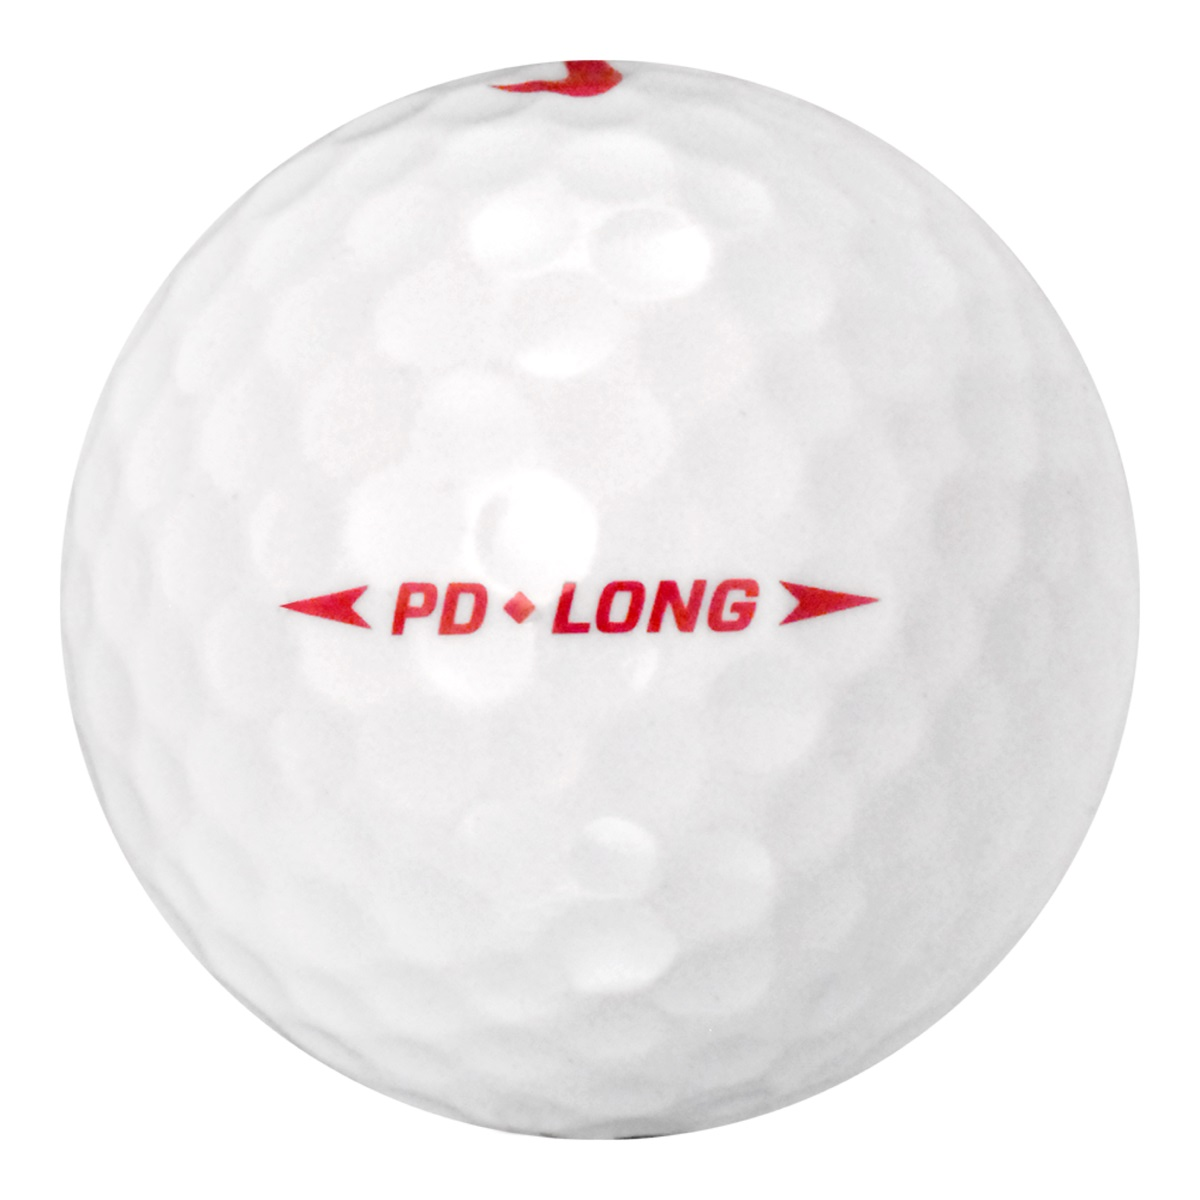 Nike Power Distance Long - Near Mint (AAAA) Grade - Recycled (Used) Golf Balls - 100 Pack